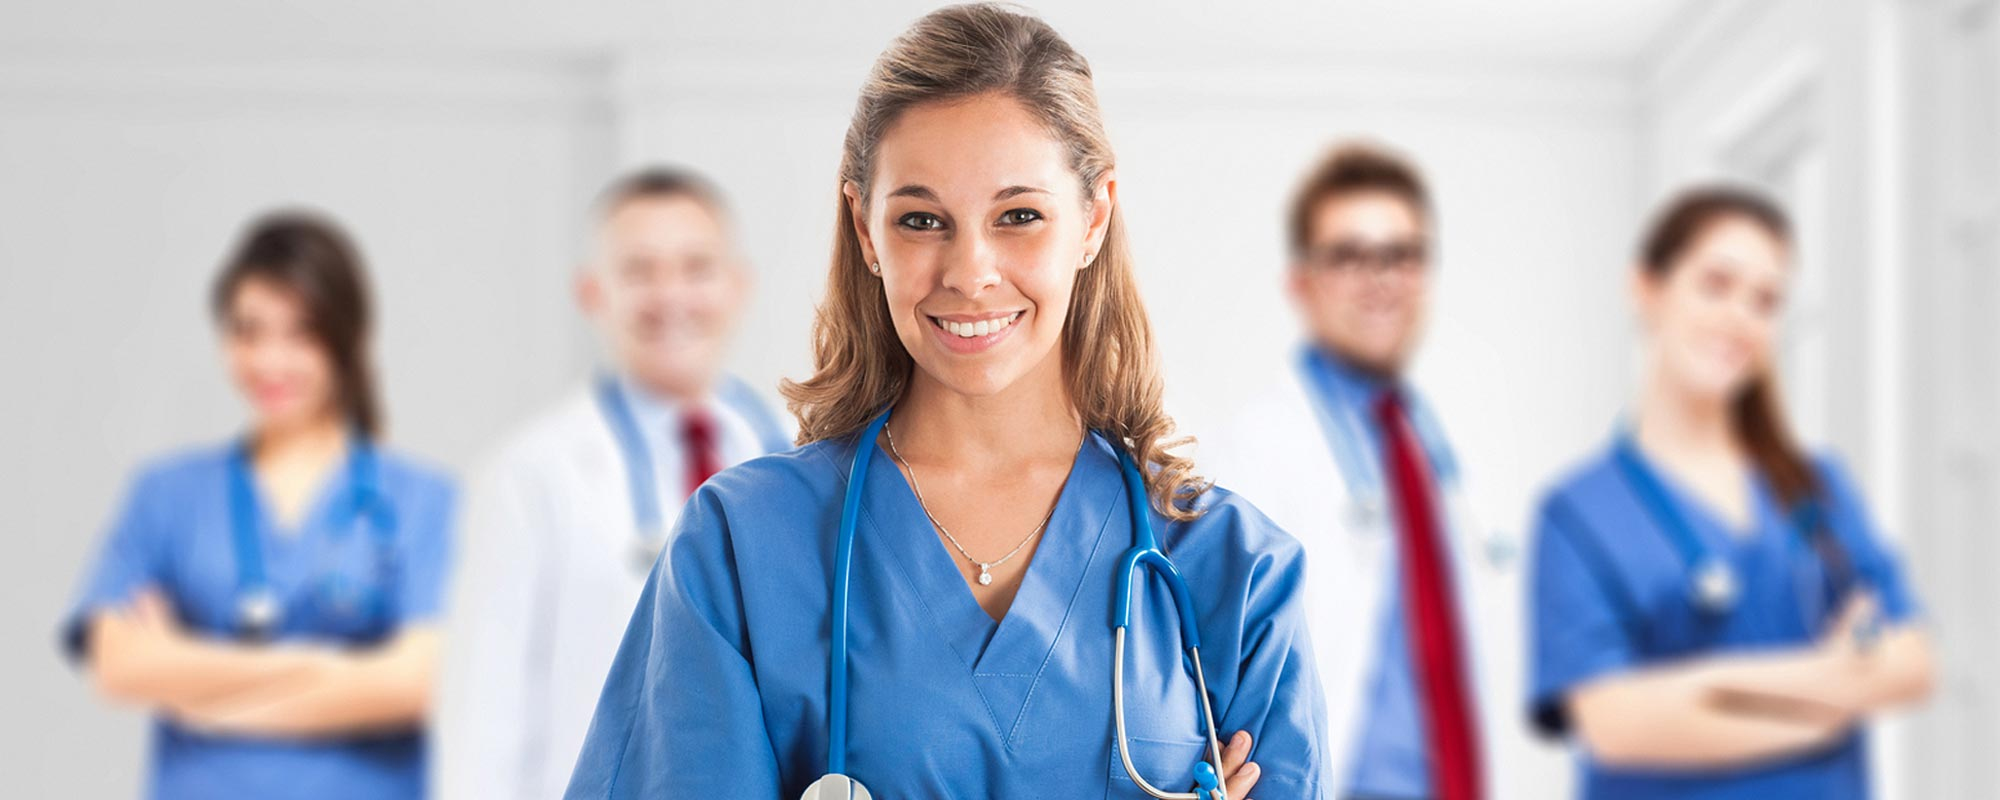 Cna course find the right school for cna cna classes online 1betcityfo Choice Image